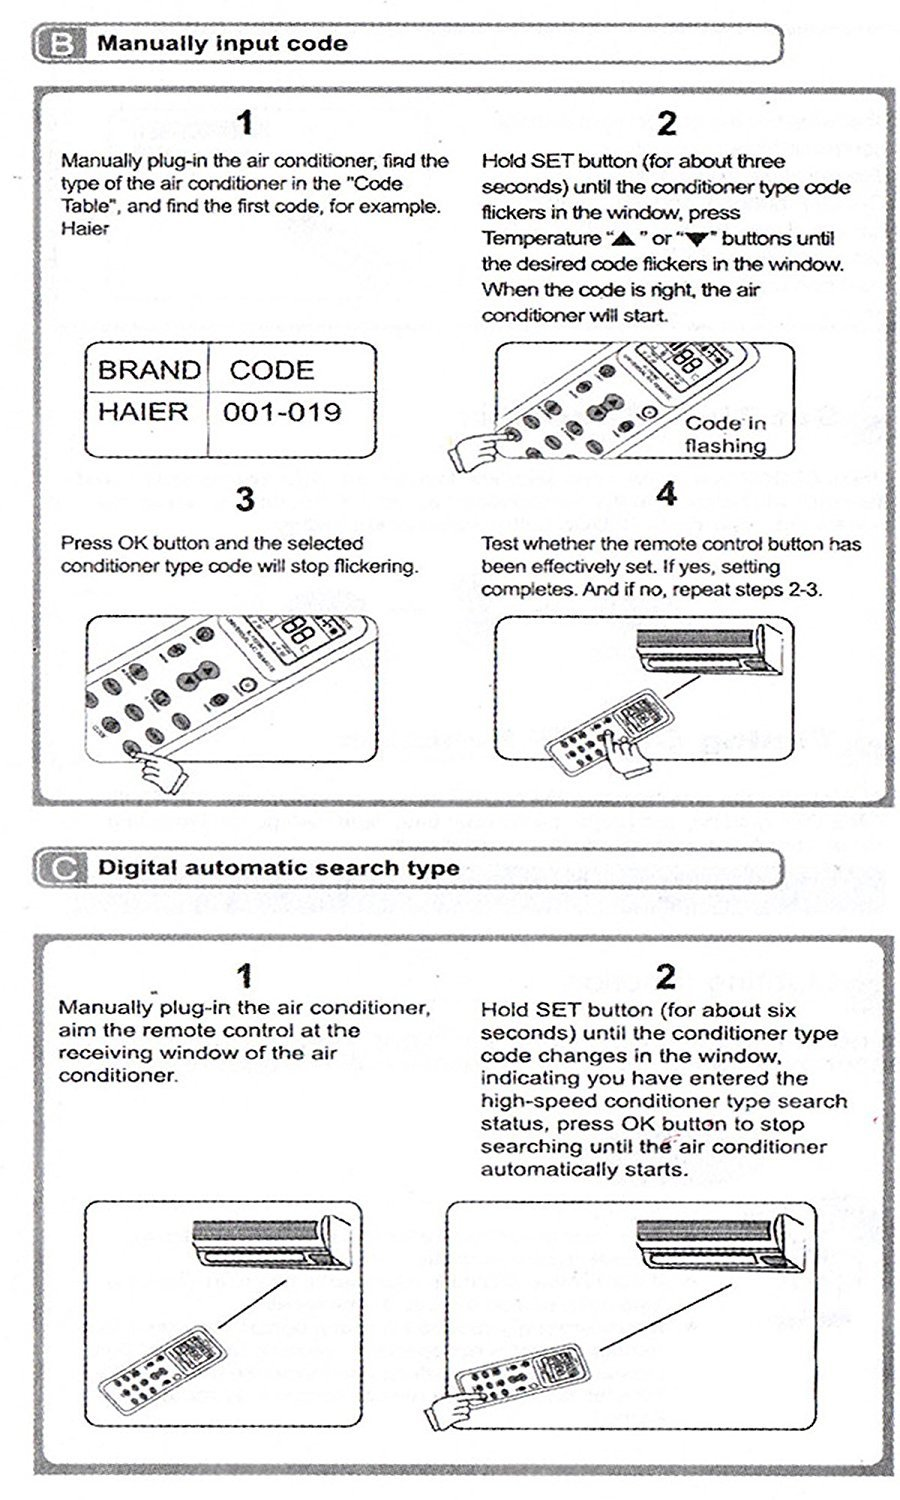 haier aircon manual